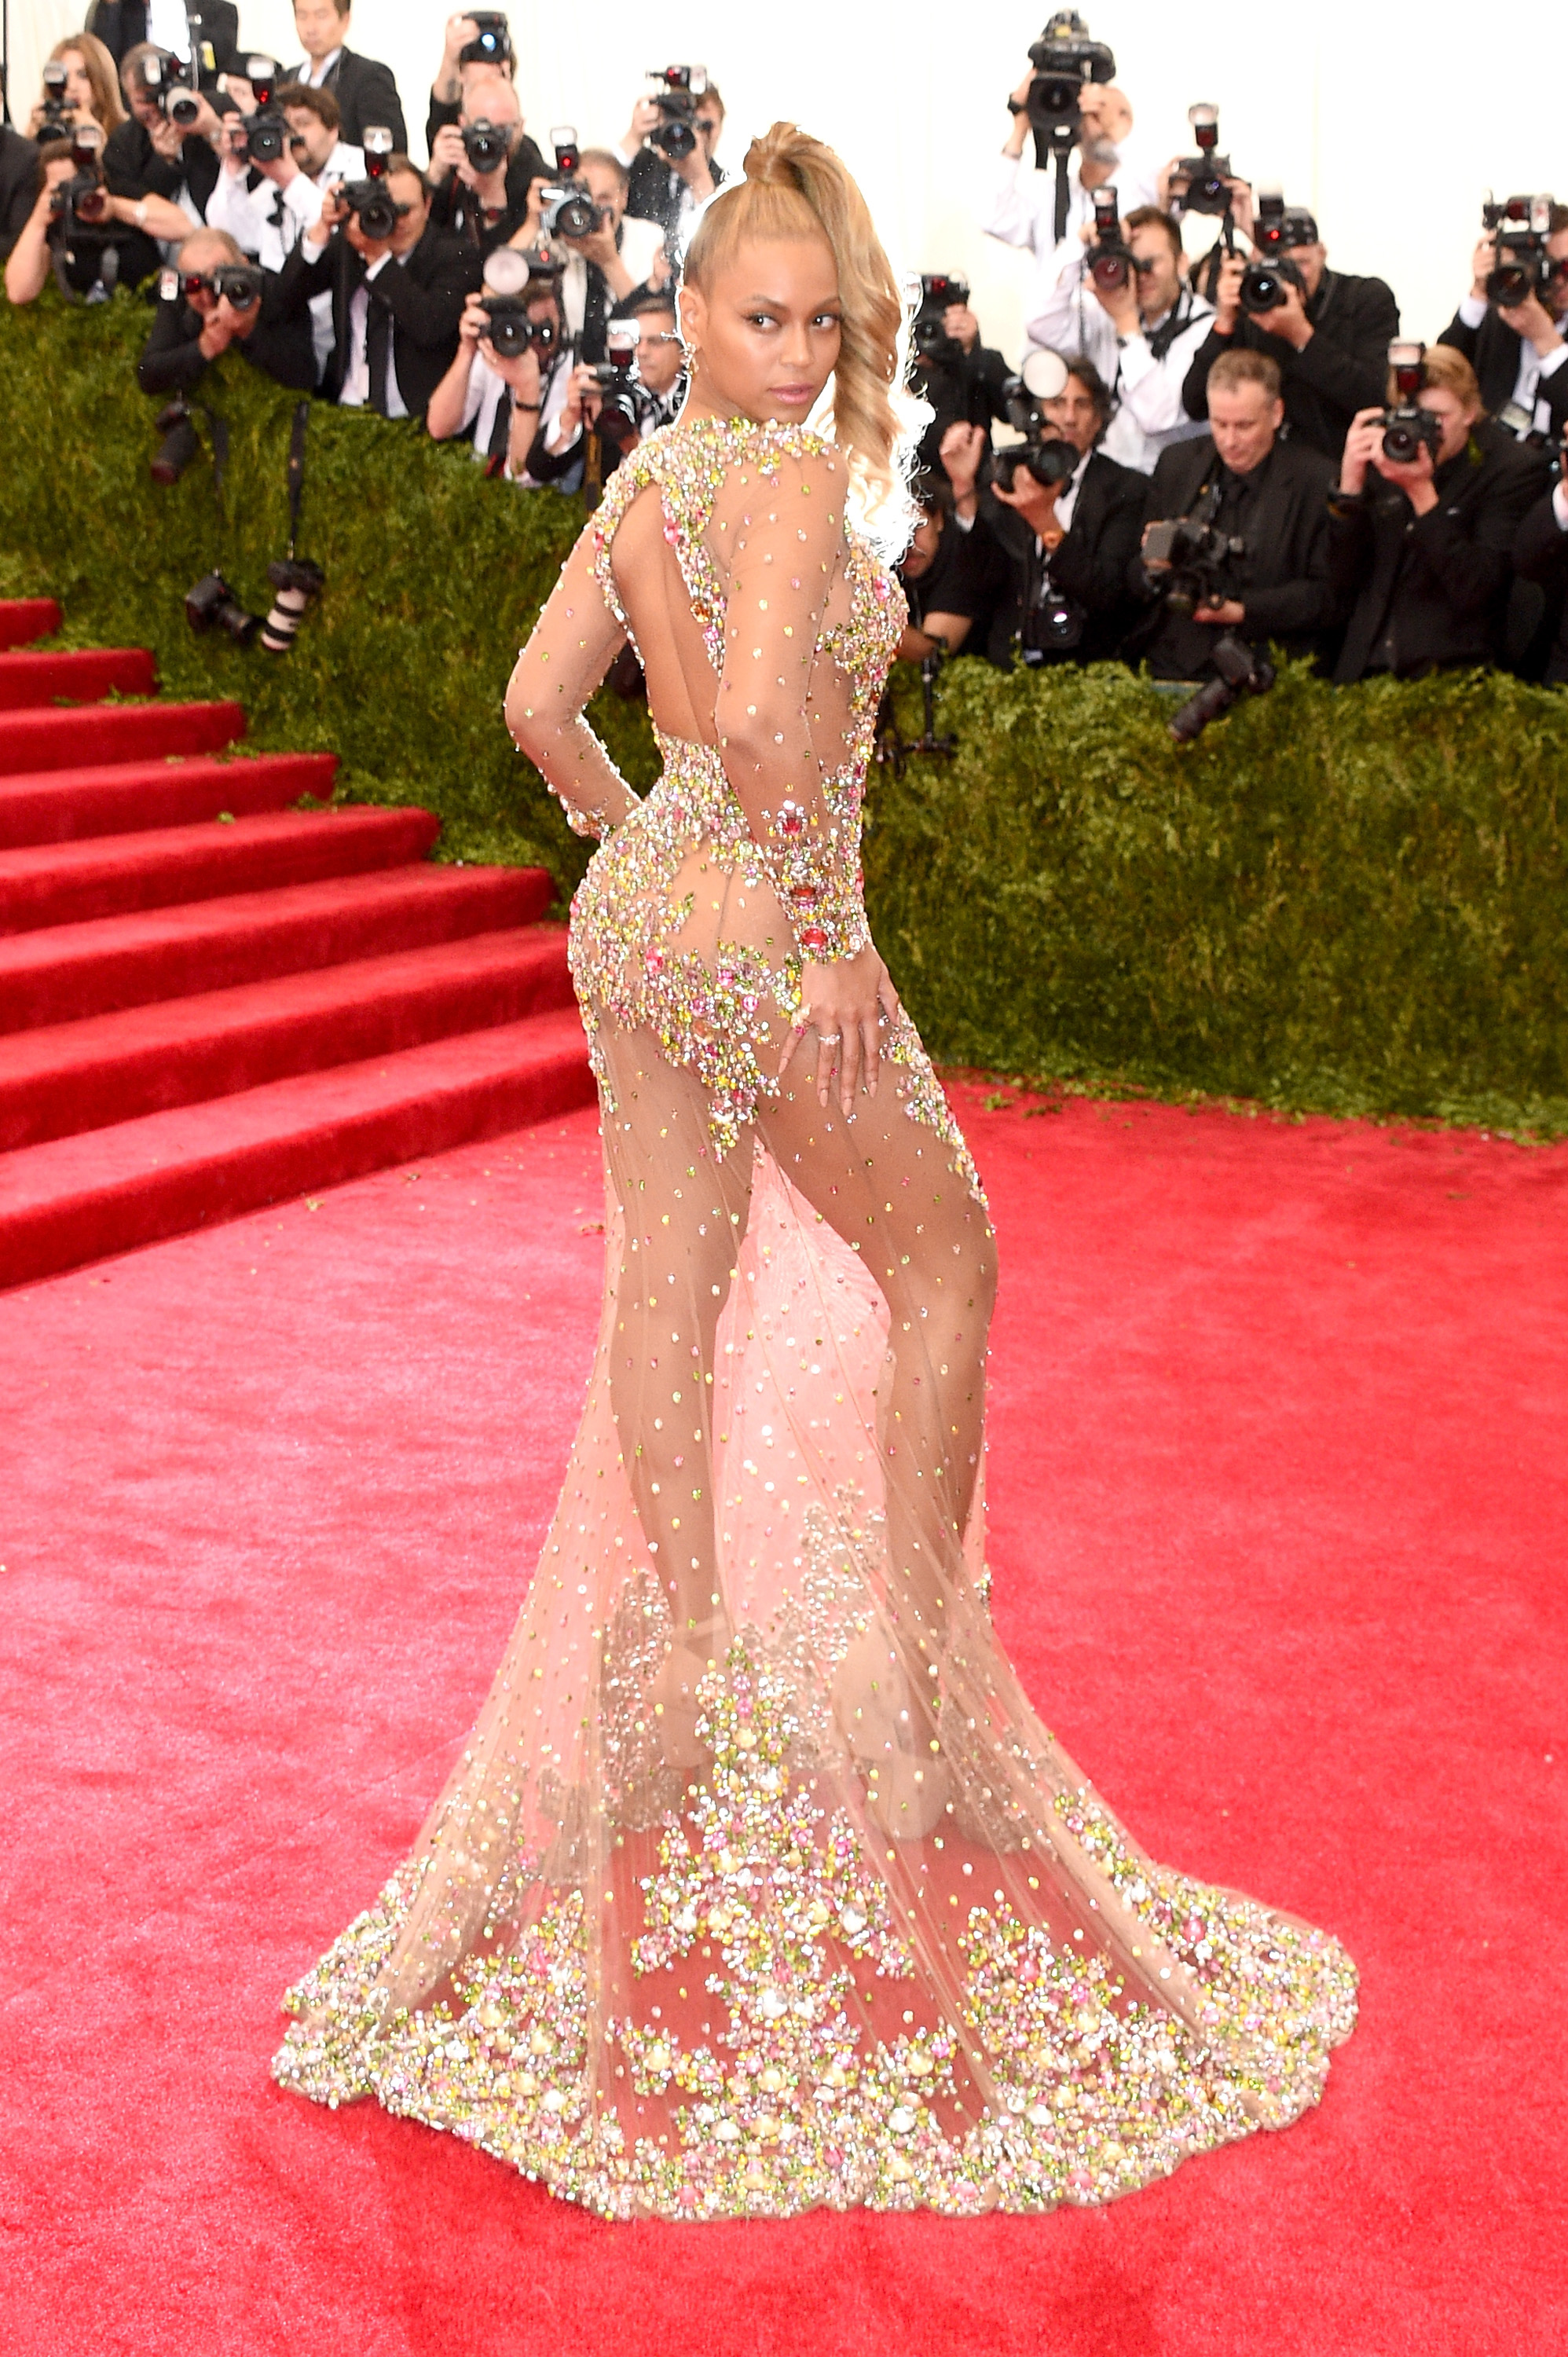 LOOK: Beyonce in stunning see-through gown | ABS-CBN News